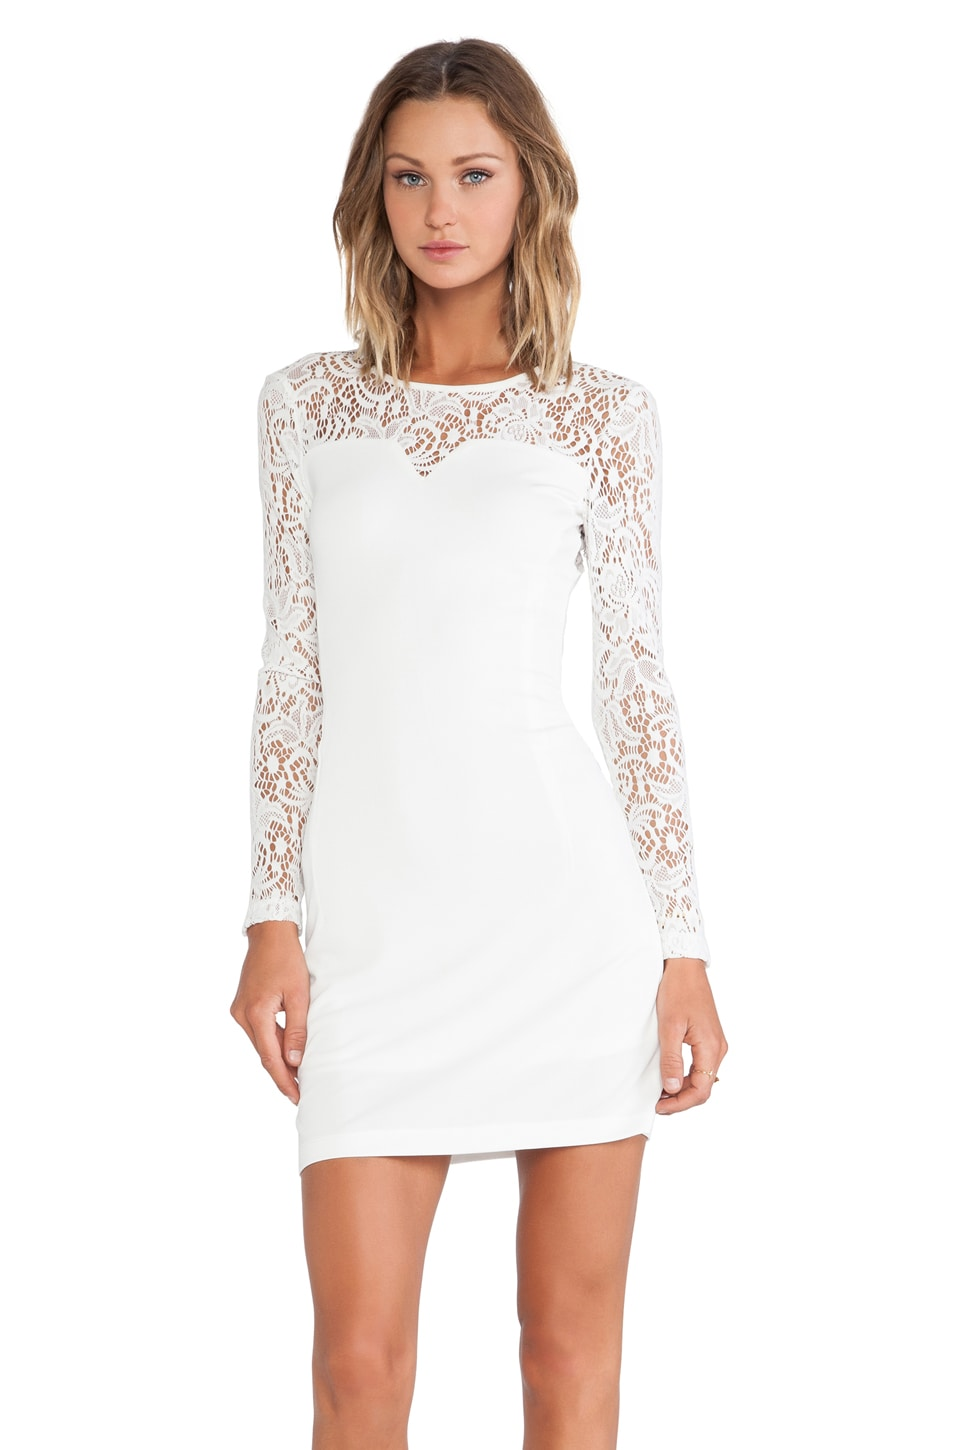 Bobi BLACK Long Sleeve Dress in White